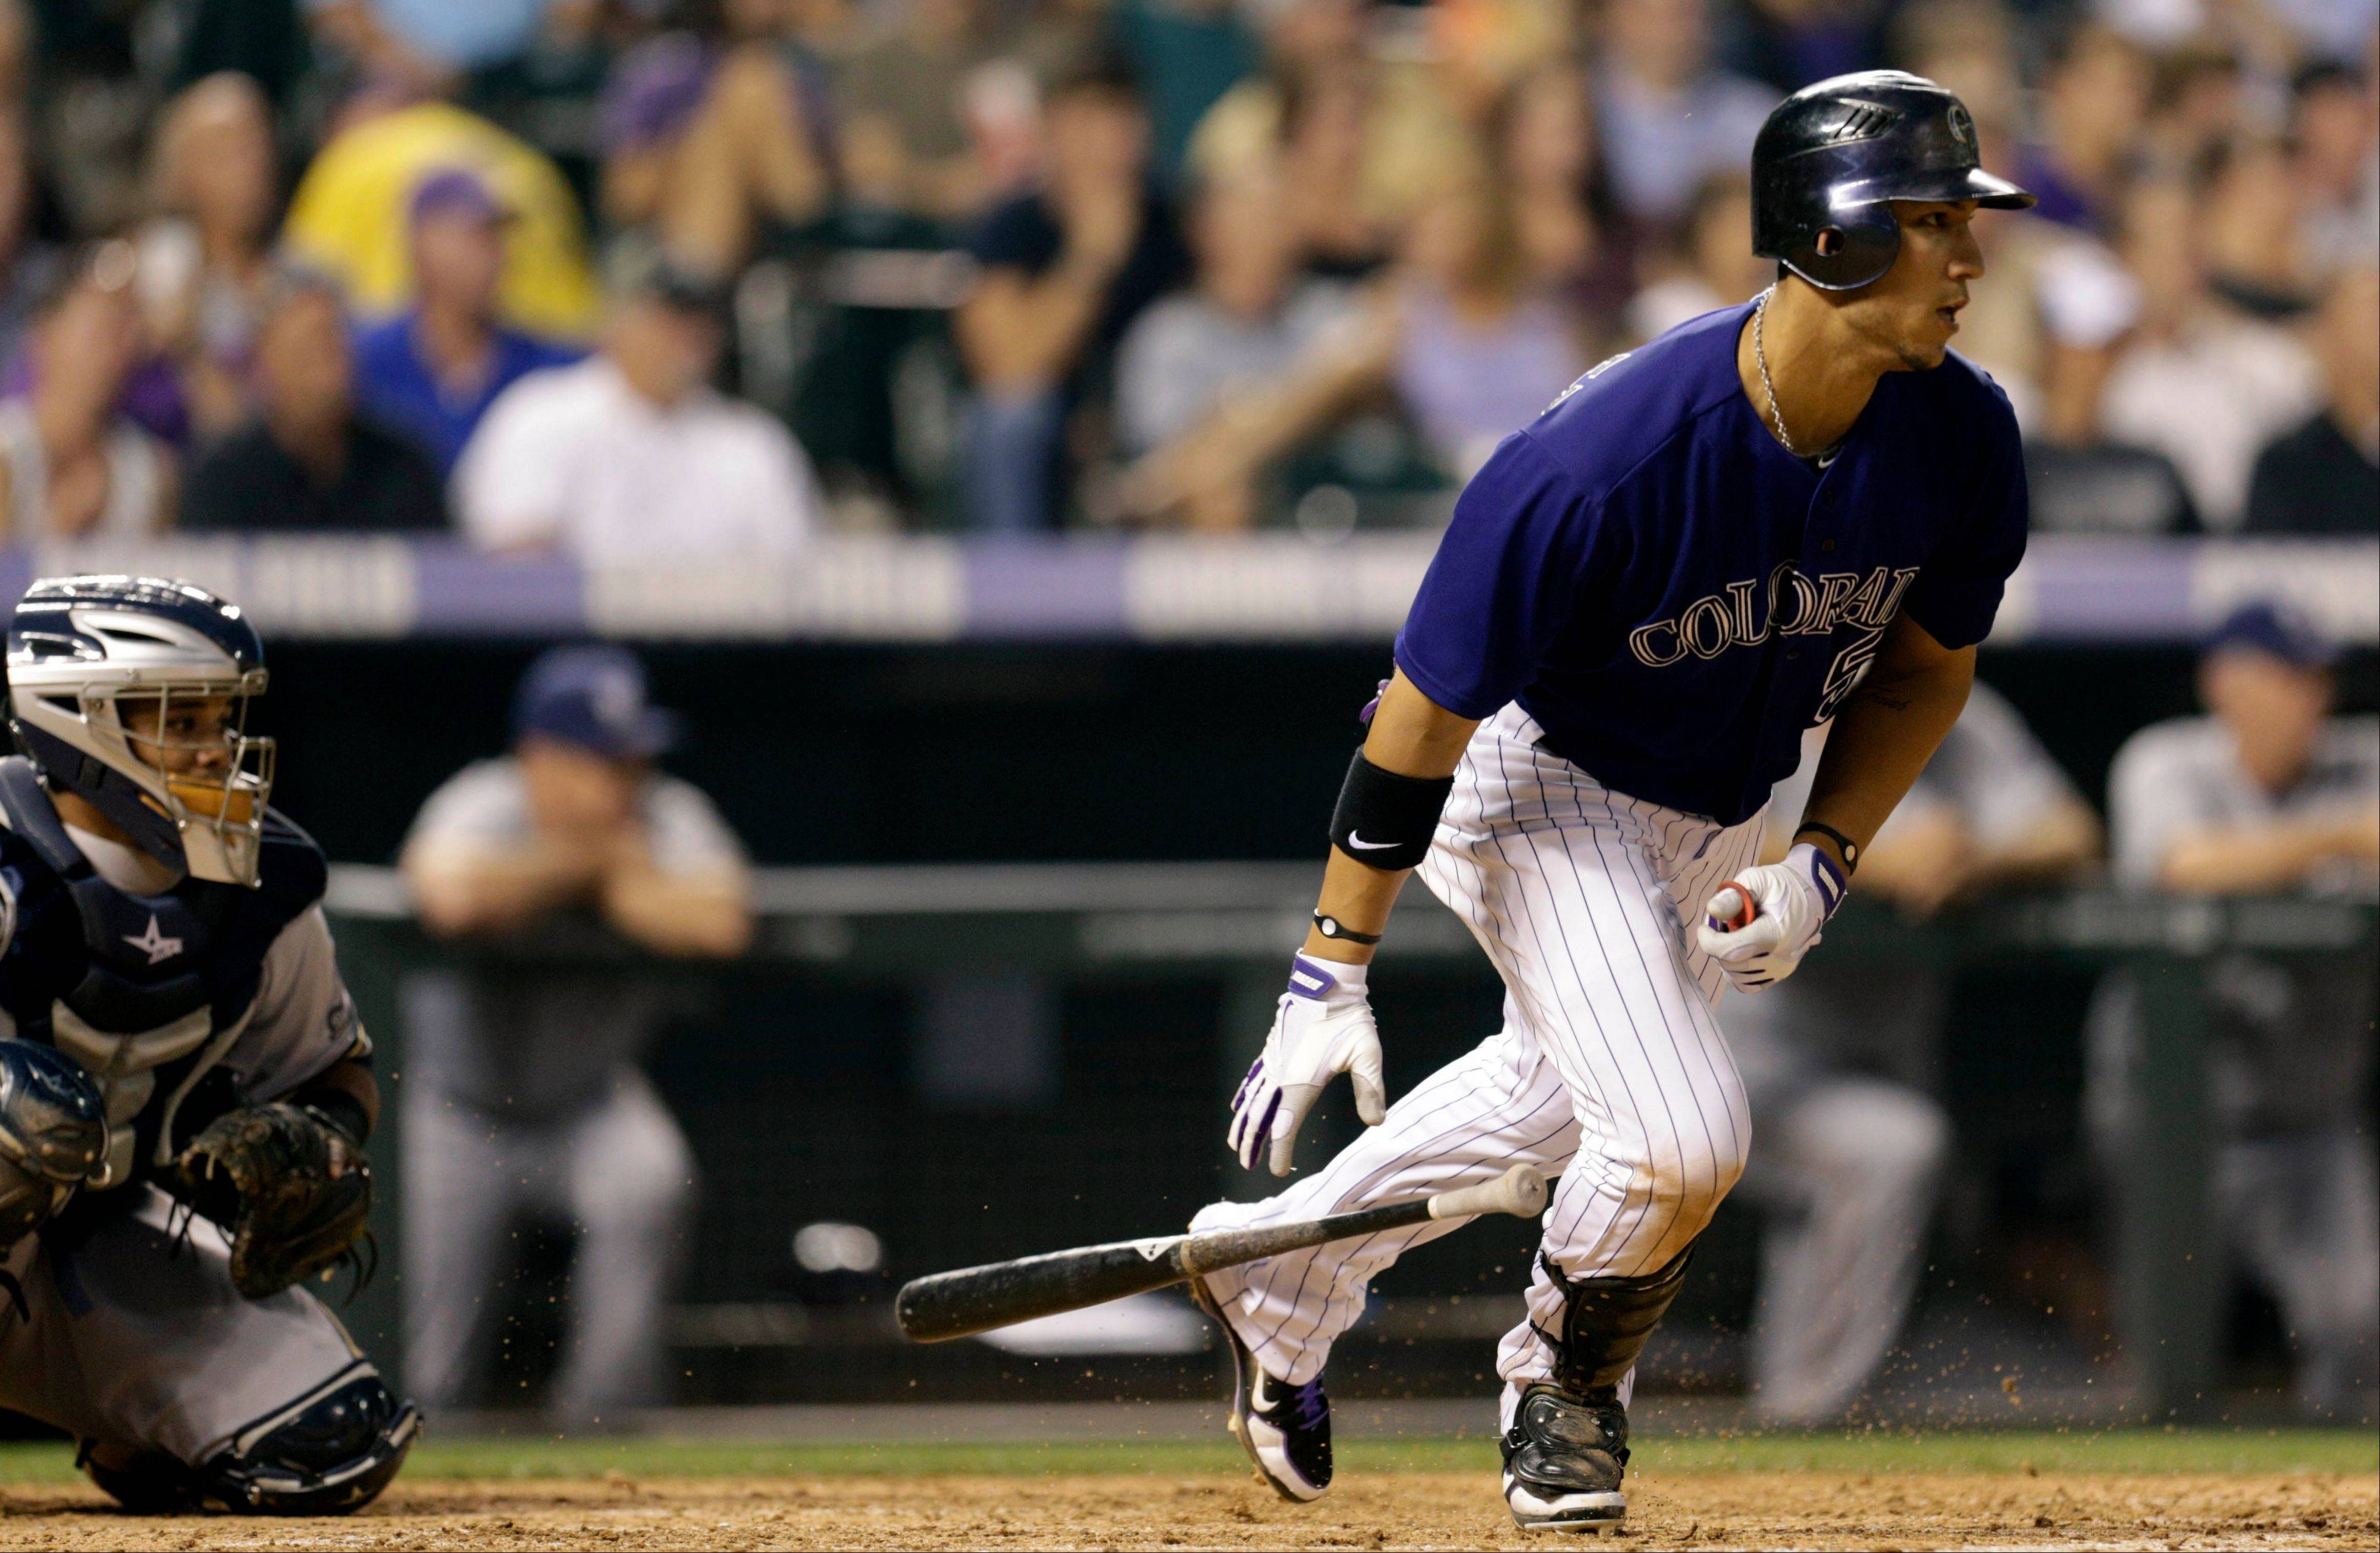 Colorado Rockies outfielder Carlos Gonzalez, right, hits a single against the Milwaukee Brewers Tuesday during the fifth inning. Brewers catcher Martin Maldonado watches the play.